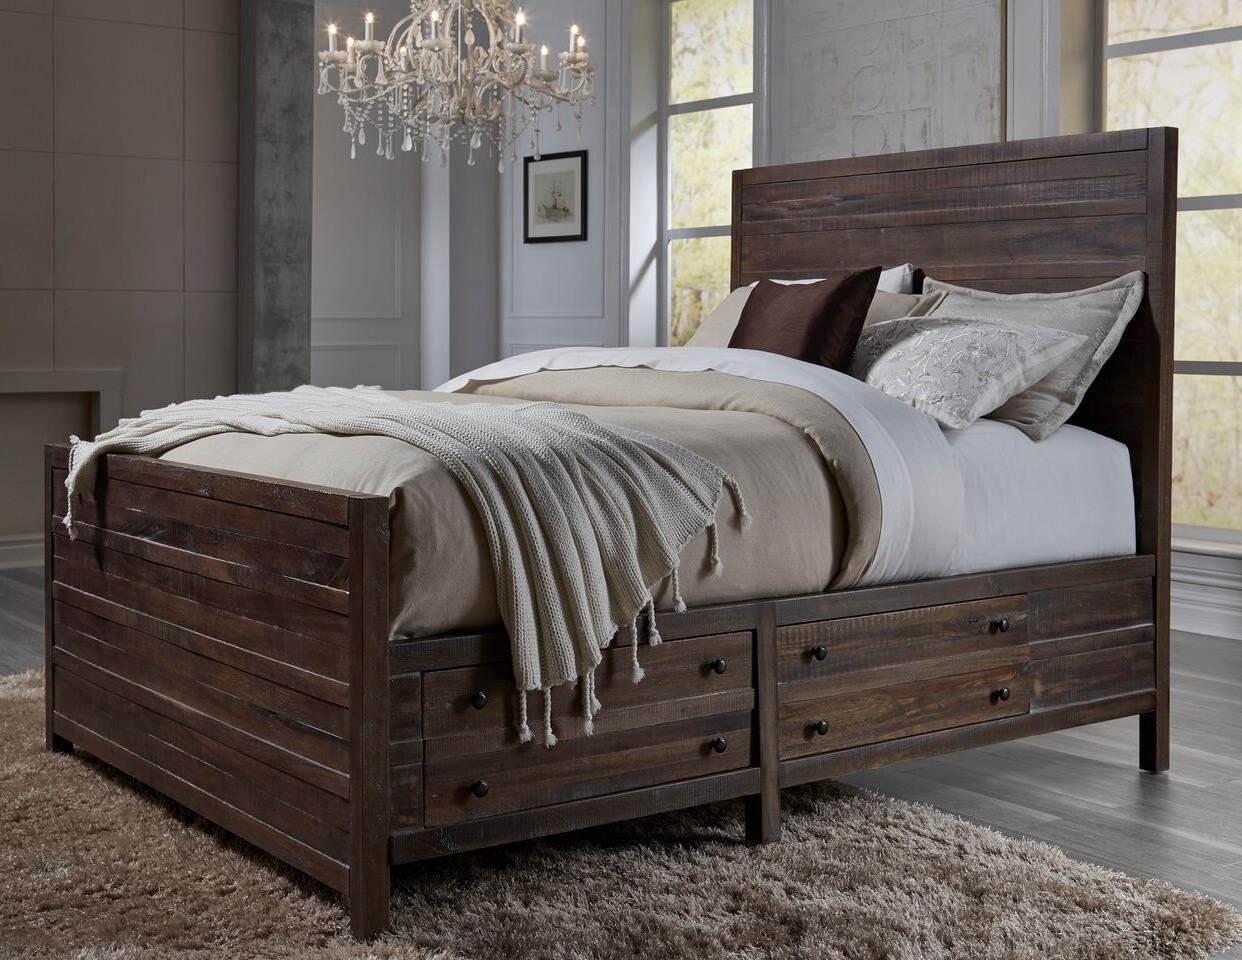 California King Storage Bed with Storage